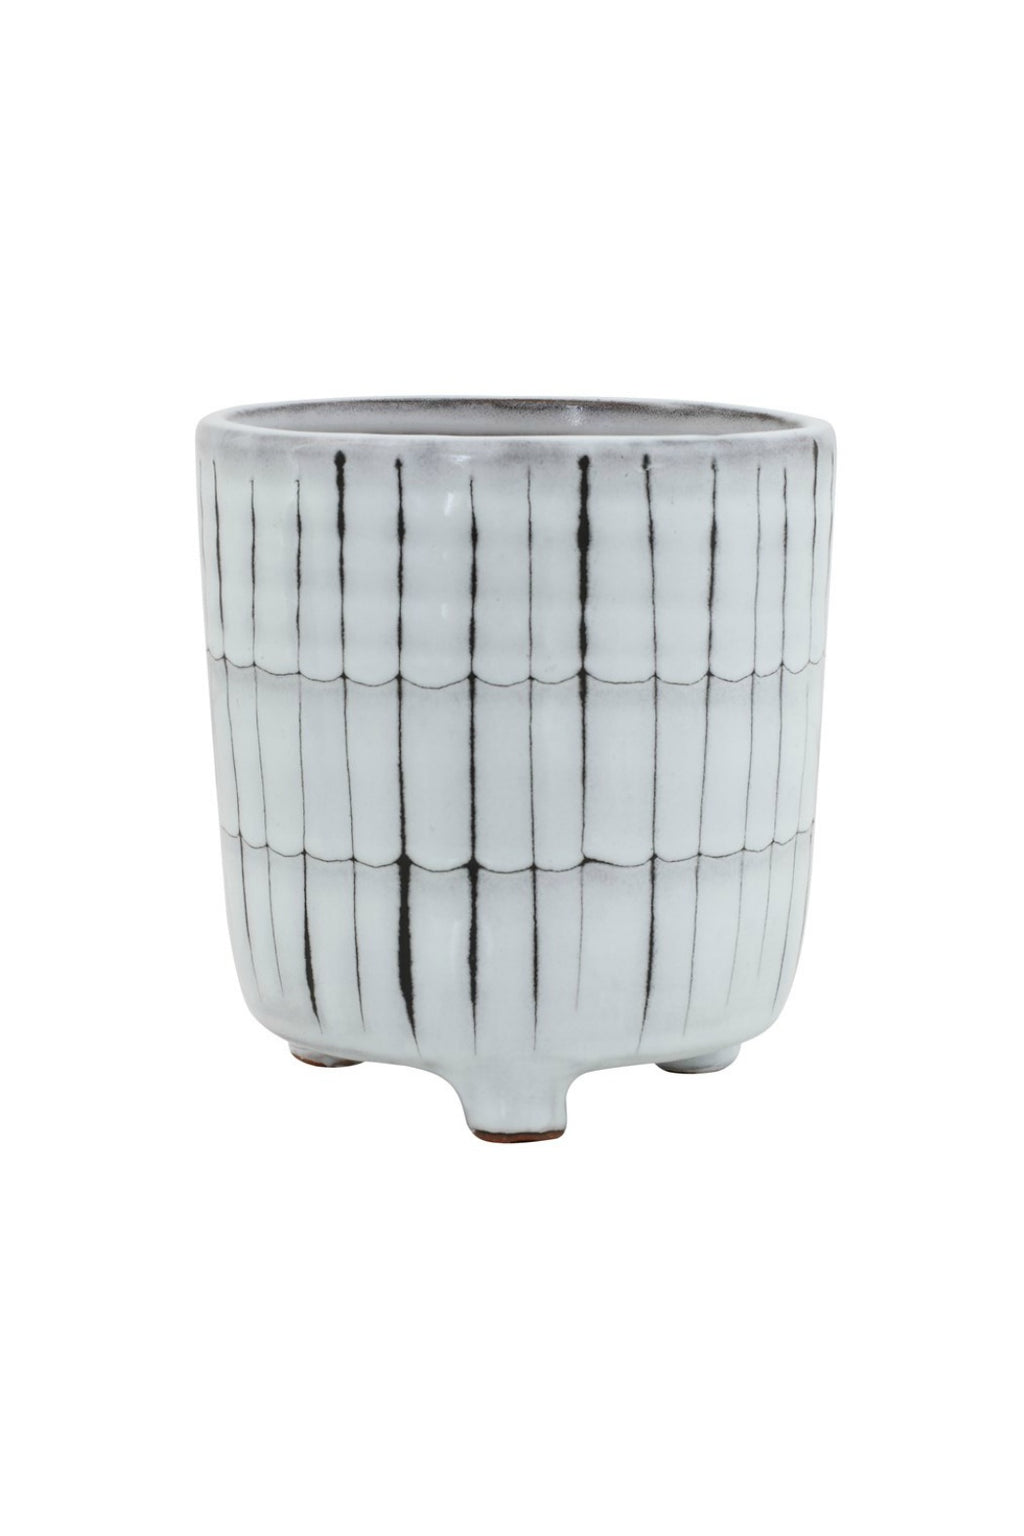 Creative Co-op White & Black Terracotta Footed Planter